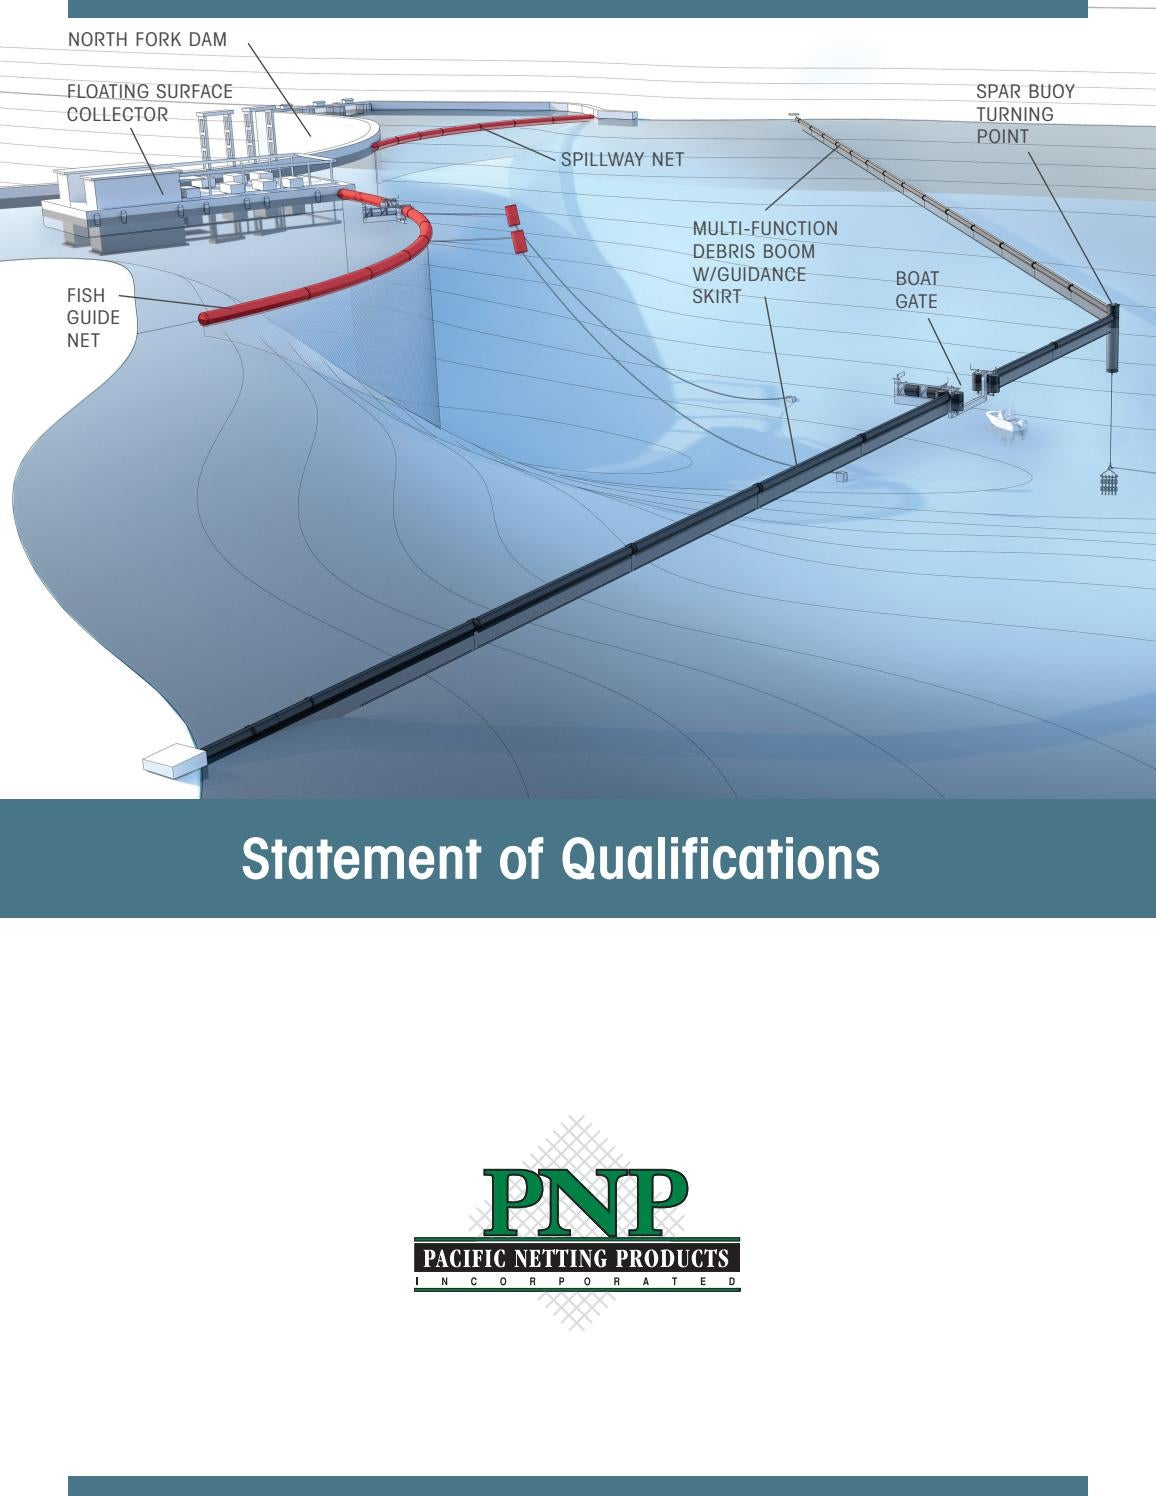 PNP Statement of Qualifications 24pg by Pacific Netting Products - issuu